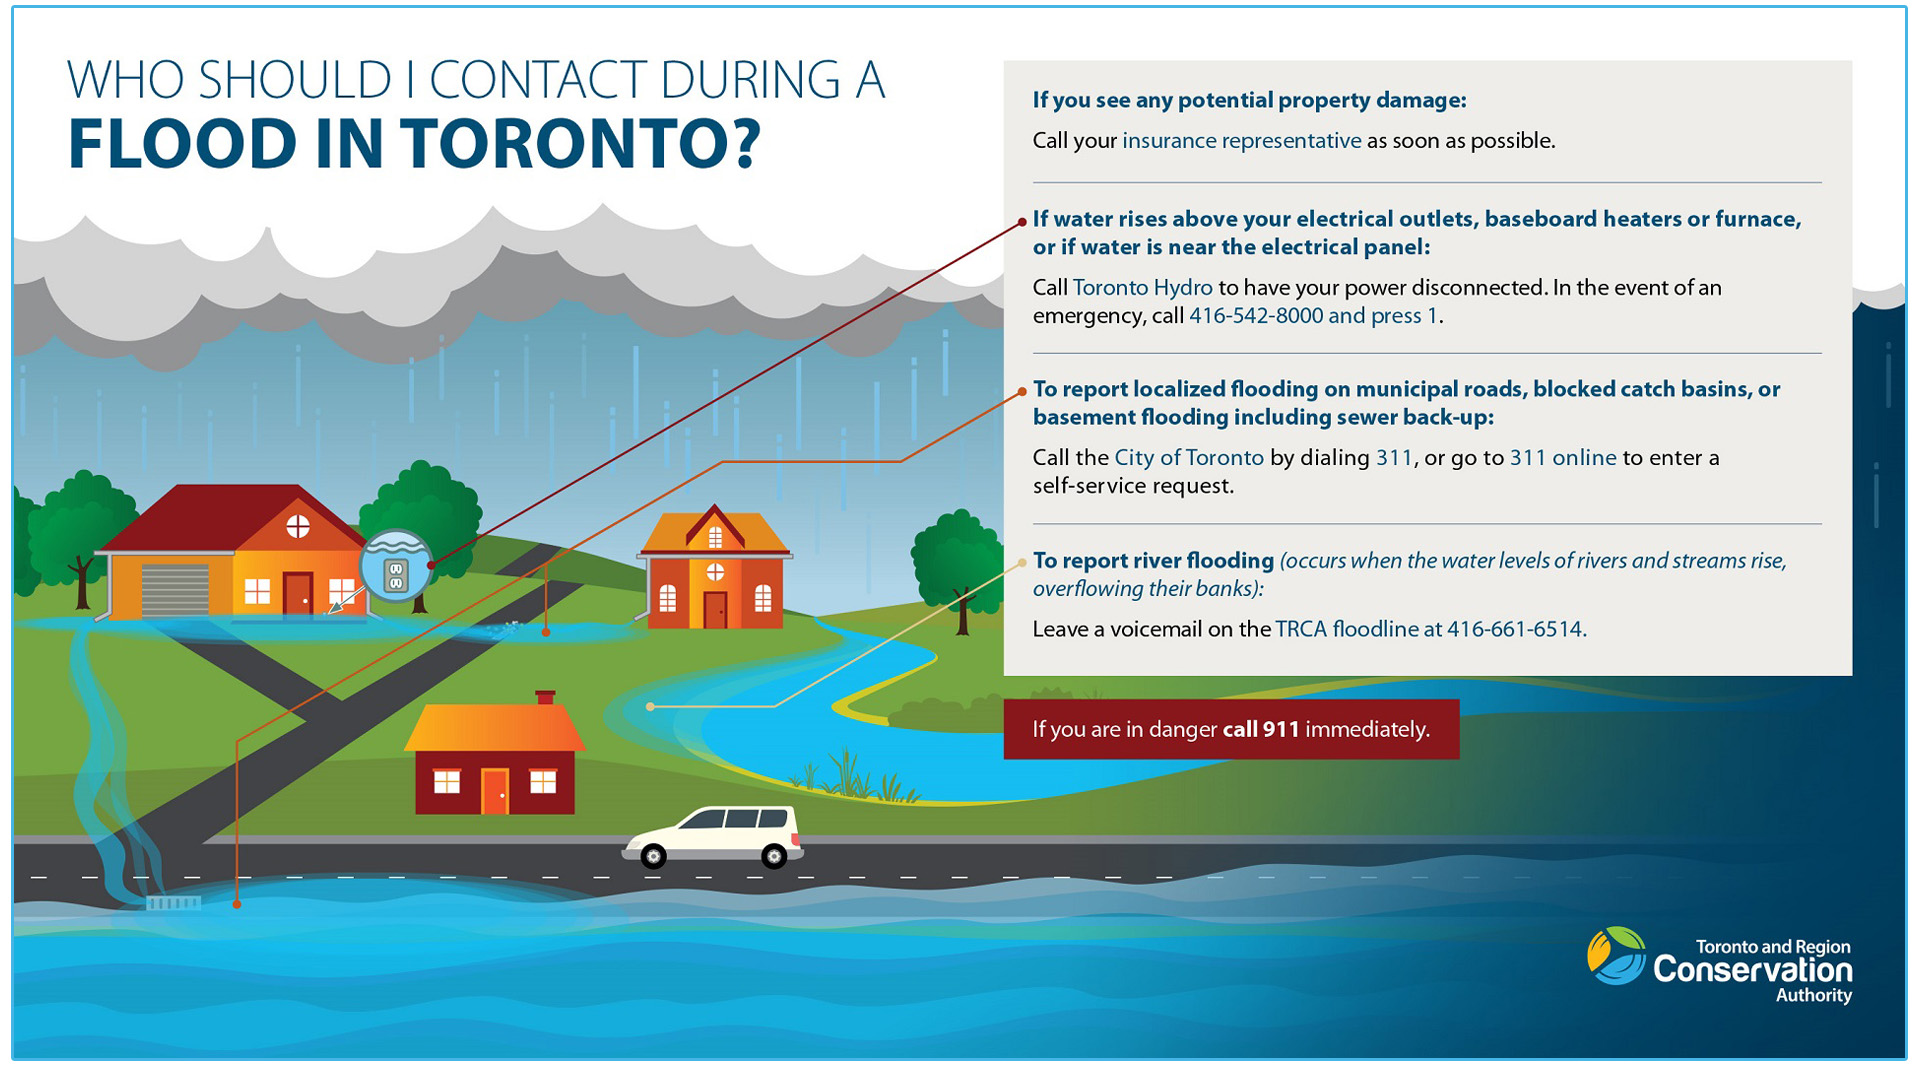 who to contact during a flood in Toronto